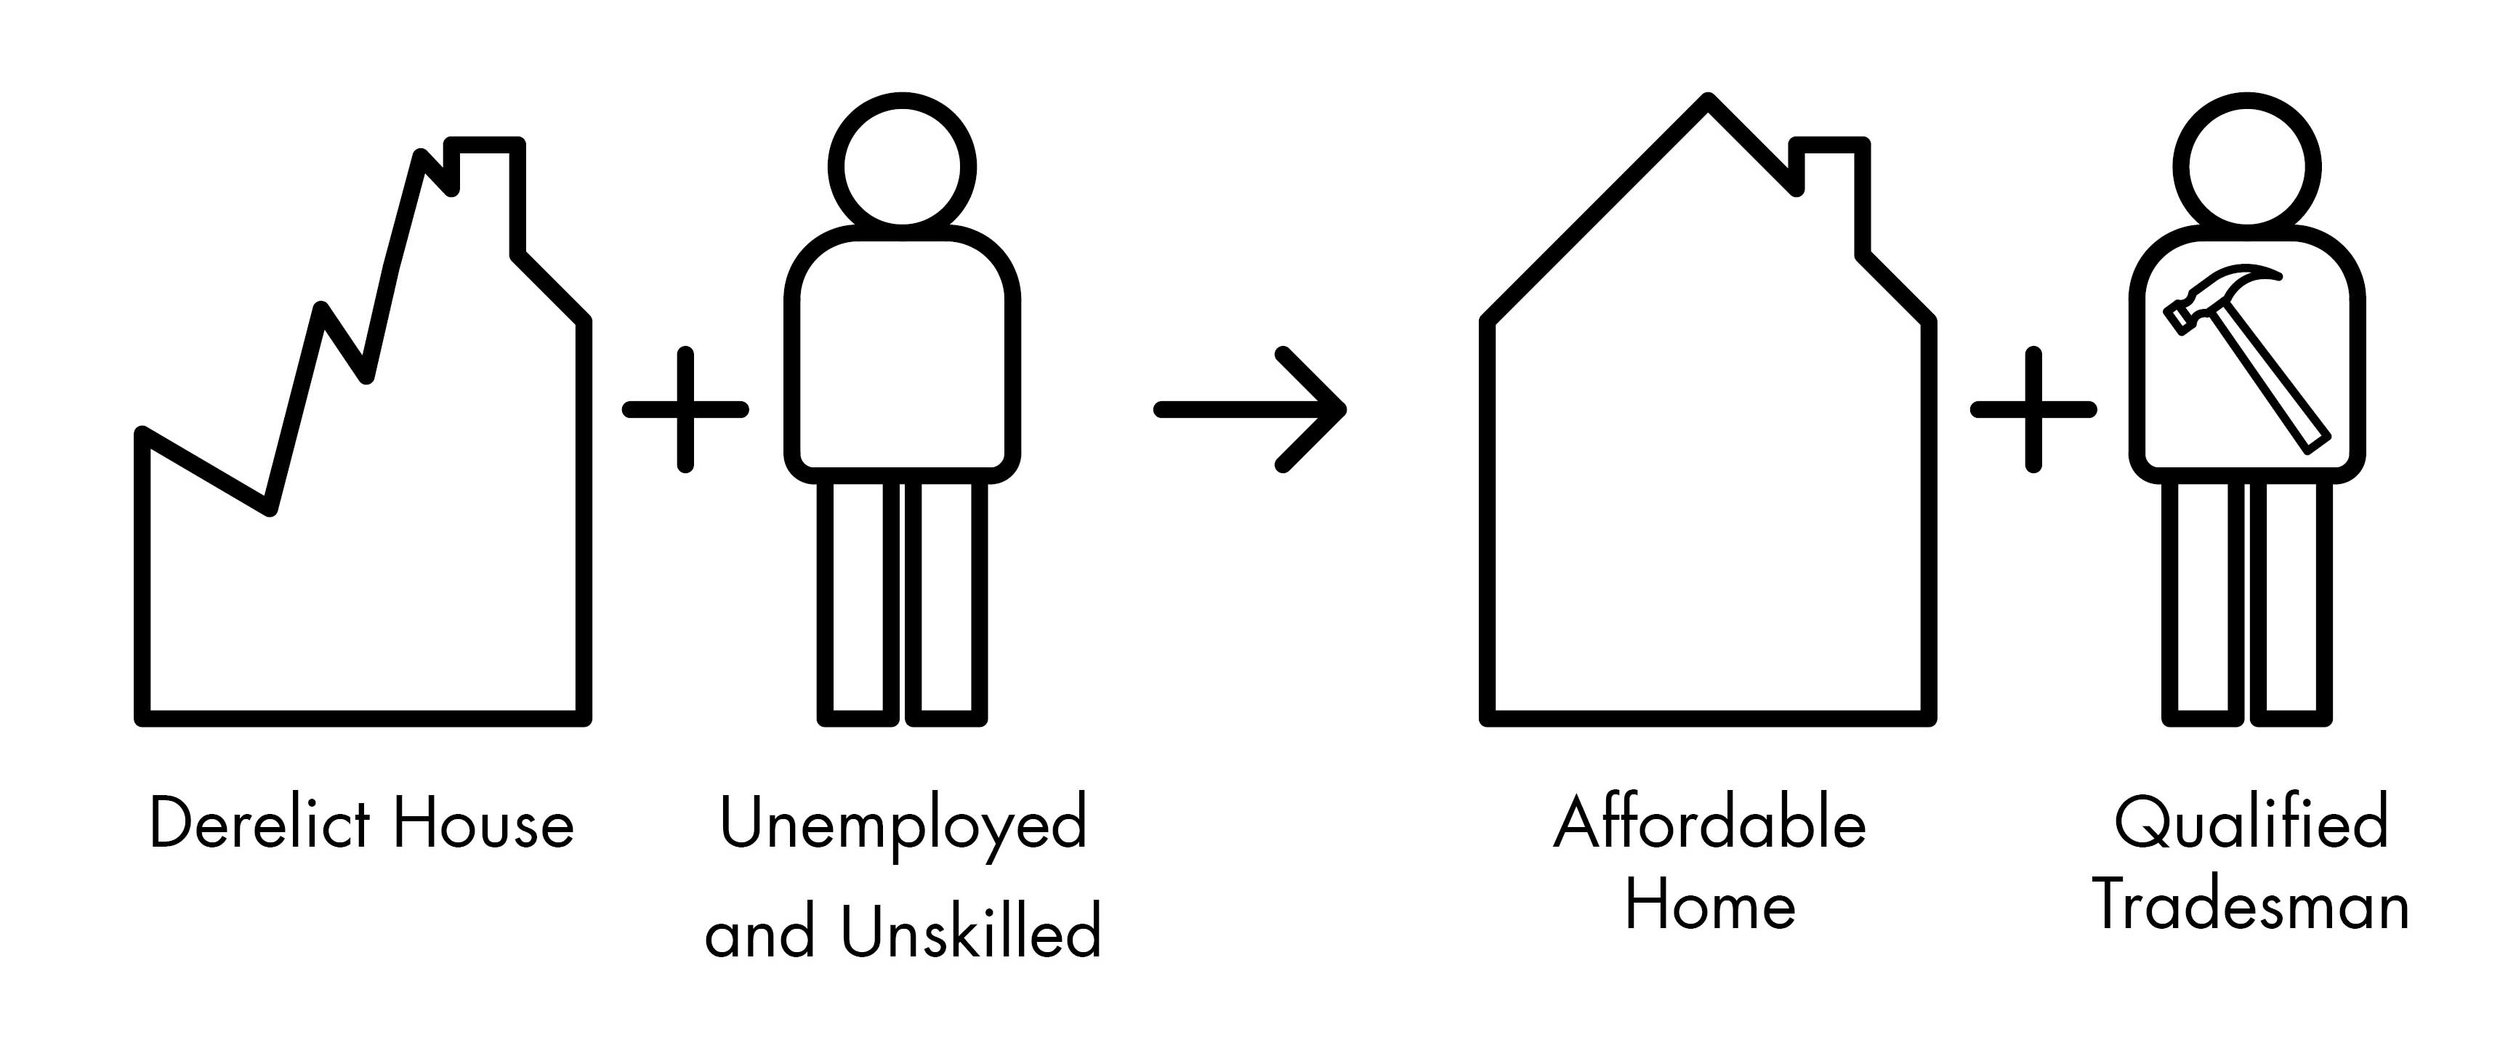 Affordable Housing and Qualified People